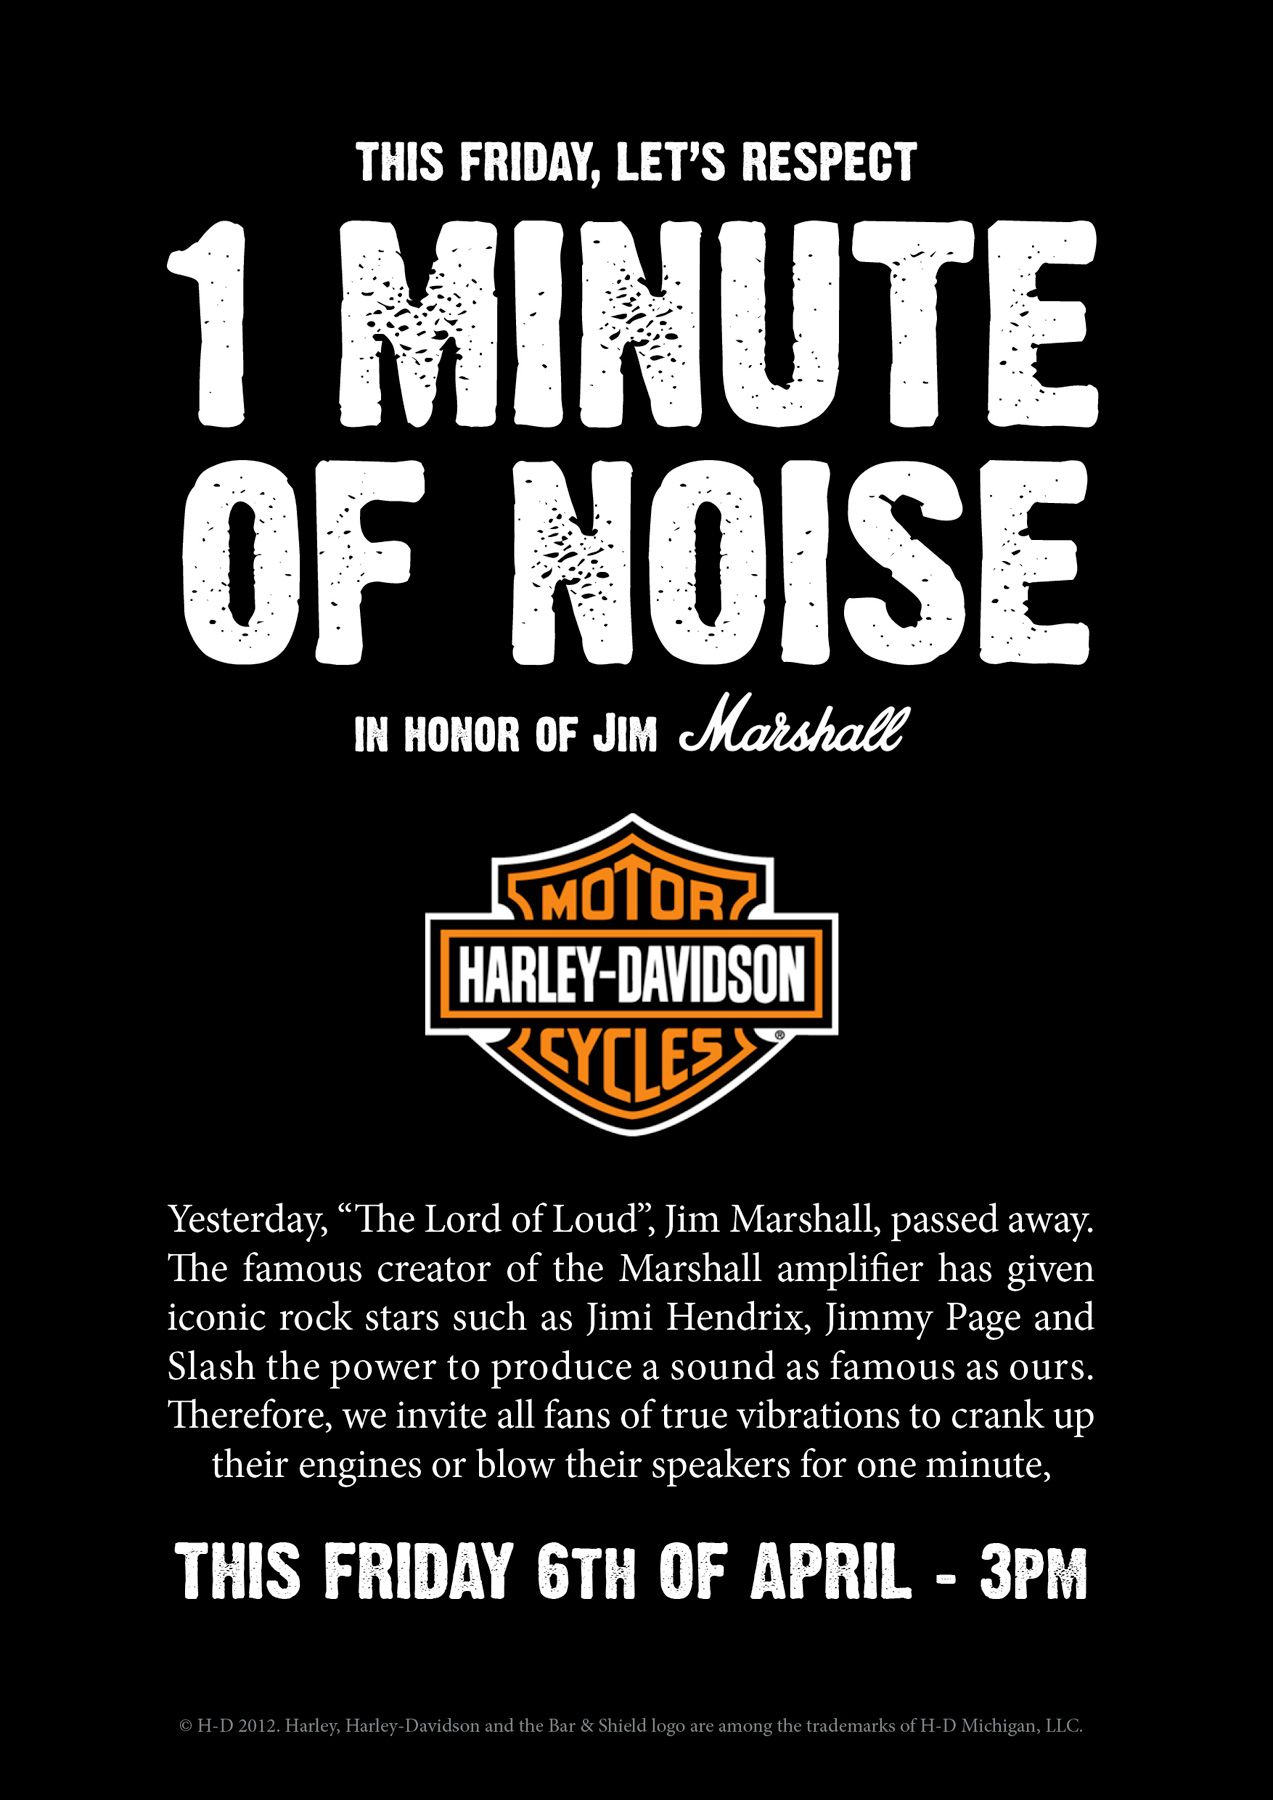 Harley Davidson Quotes Harley Davidson One Minute Of Noise  Advertising  Pinterest